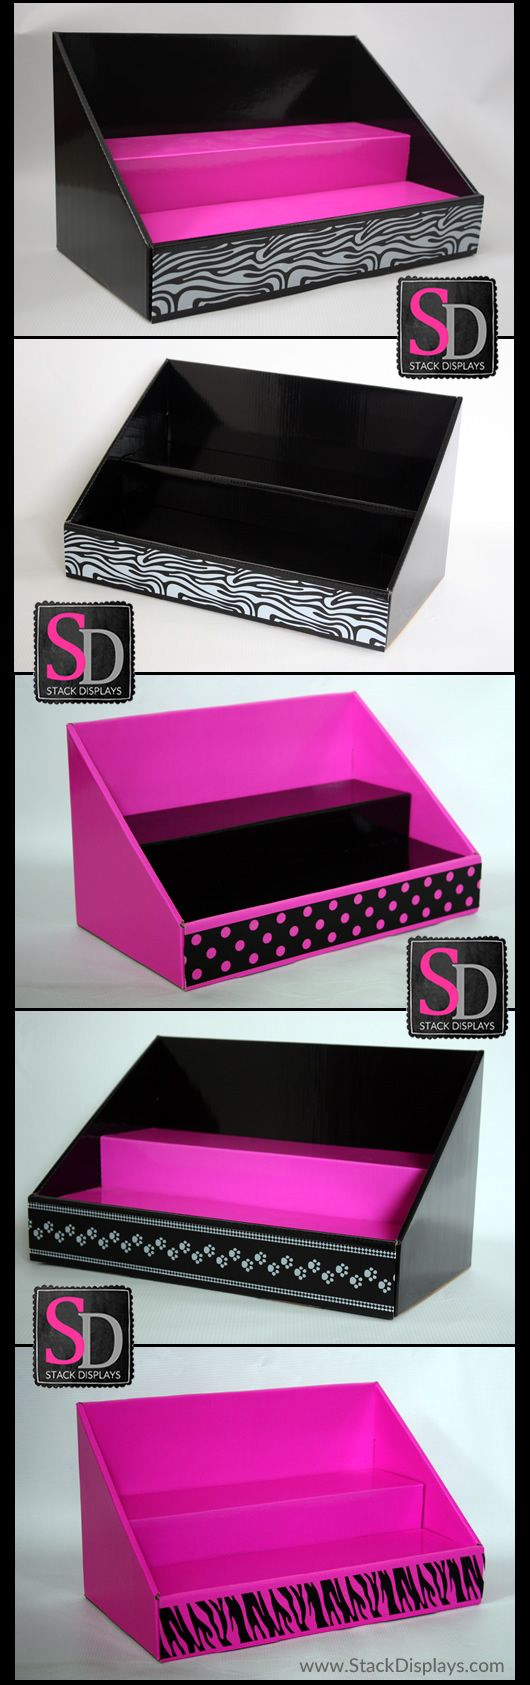 Original Pink and Black Stack Displays with various designs available. Great for Consultants with Mary Kay, Pure Romance, Perfectly Posh, Pink Zebra Home, Passion Parties and more!